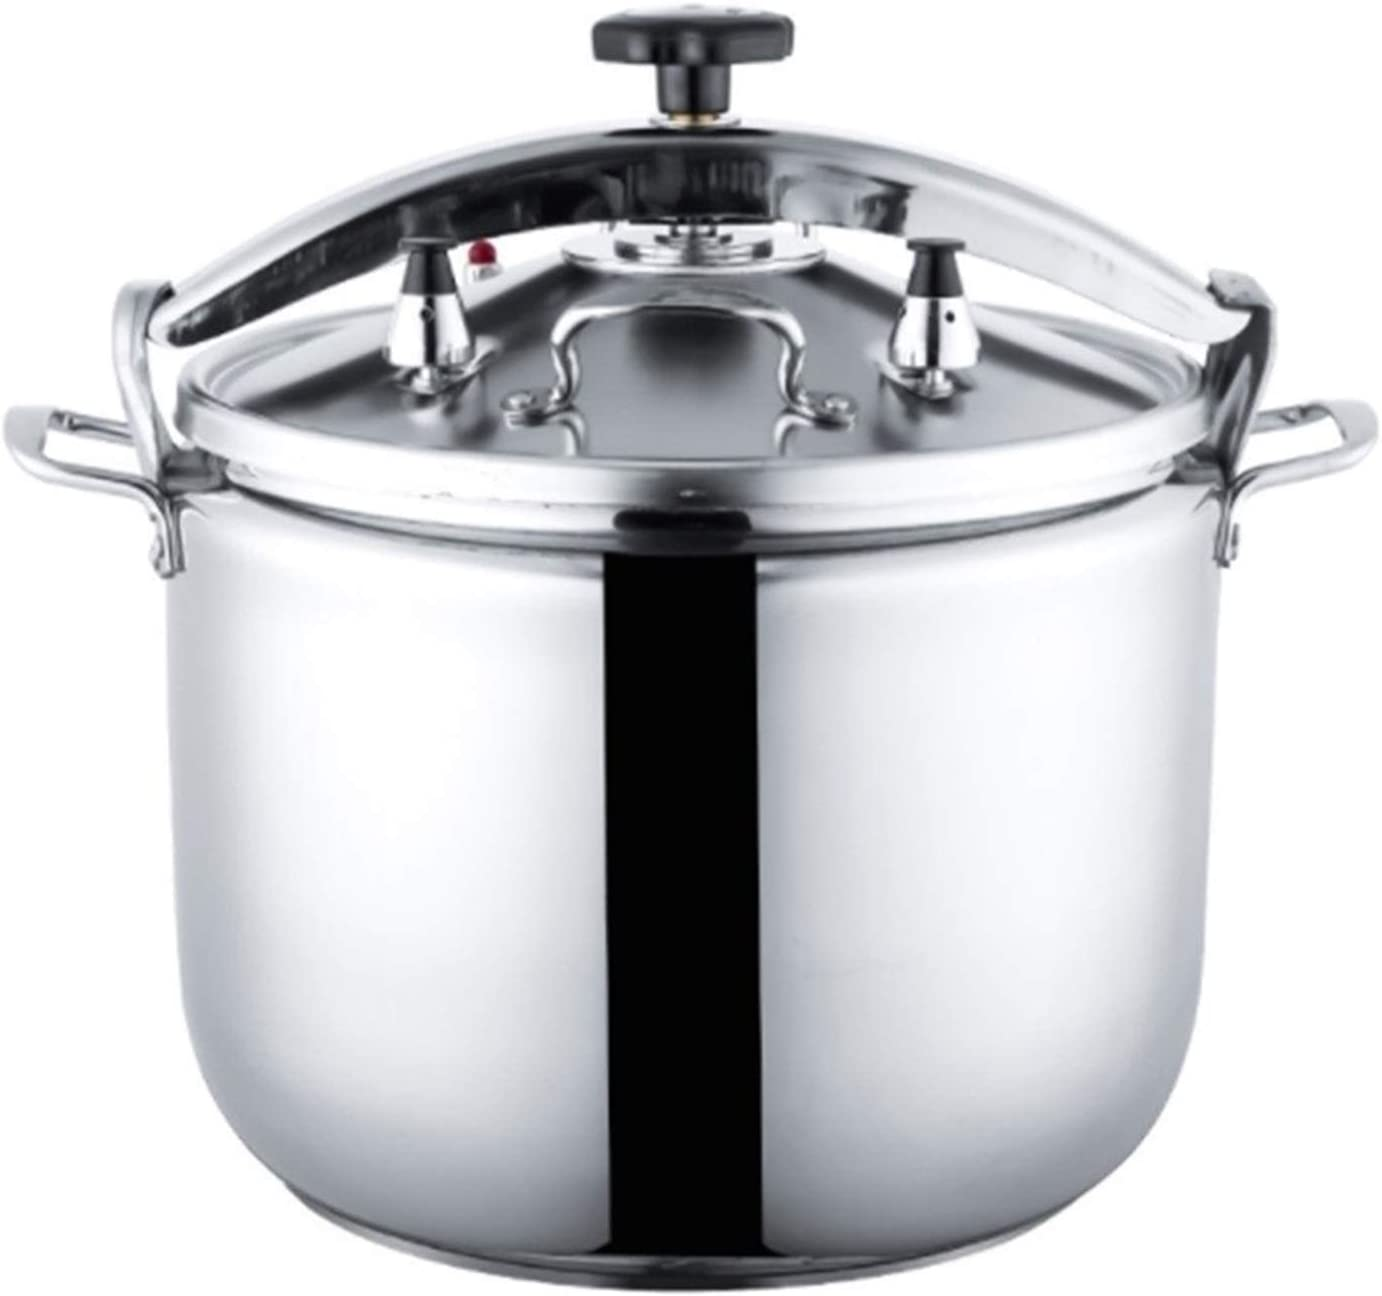 ZBINGAFF Pressure Cooker, 304 Stainless Steel Thickened Double Bottom Explosion-Proof Commercial Pressure Cooker, Family Hotel Gas Induction Cooker Universal 15-50L (Color : Silver, Size : 22L)